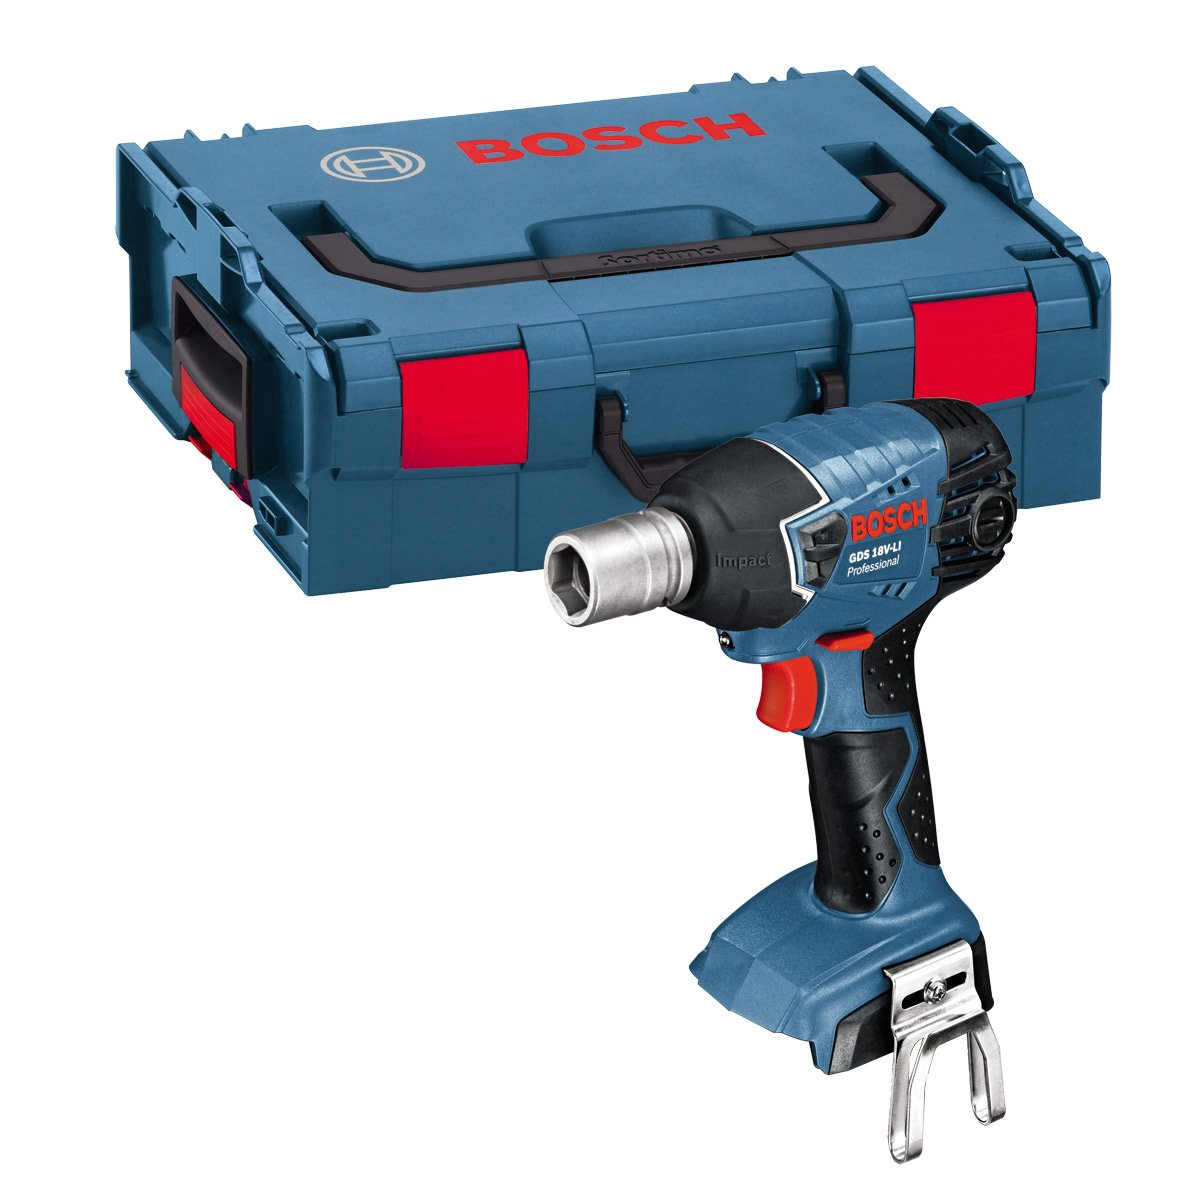 Bosch Professional GDS 18 V-LI Cordless Impact Wrench in Carton (Without Battery and Charger) - Carton GDS18VLIN